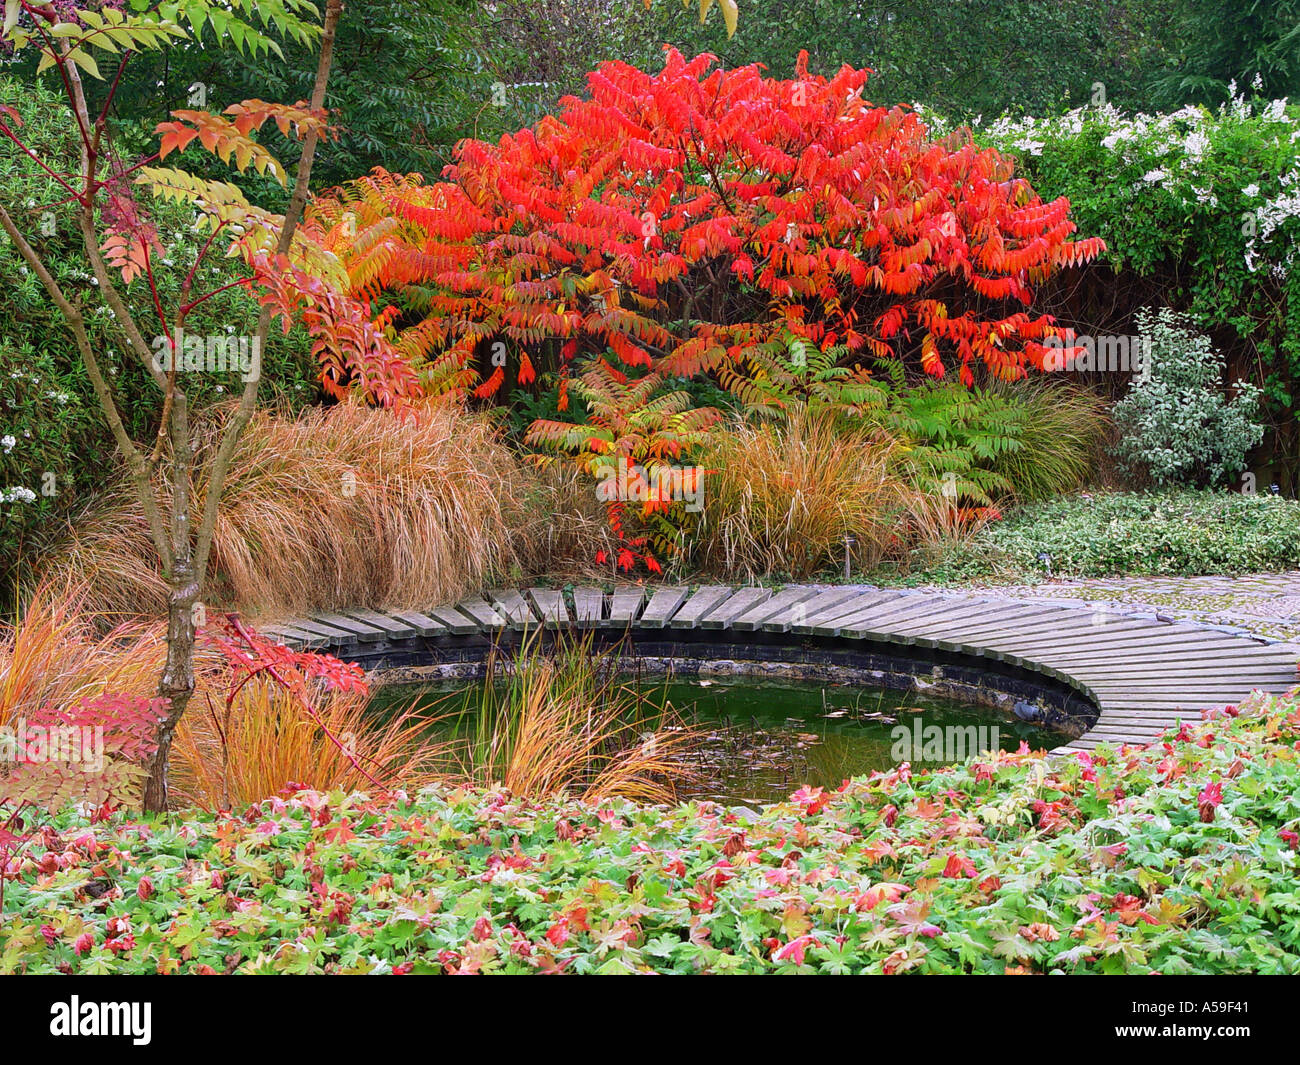 Autumn Garden View Broadview Gardens